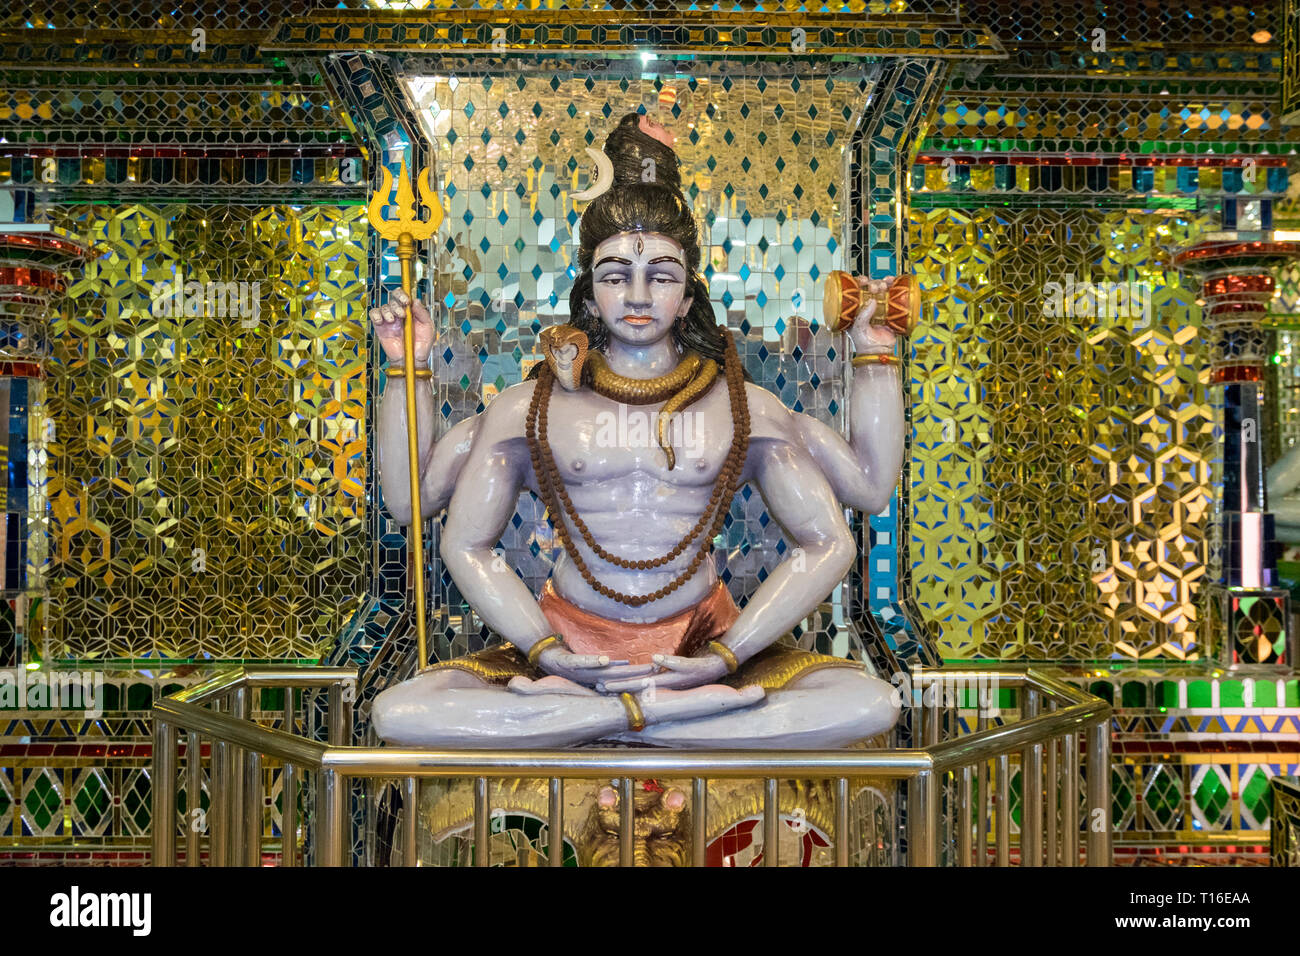 The unique Arulmigu Sri Rajakaliamman Glass Temple in Johor Bahru, Malaysia. The interior is completely covered in glass tiles. Two headed man detail. - Stock Image